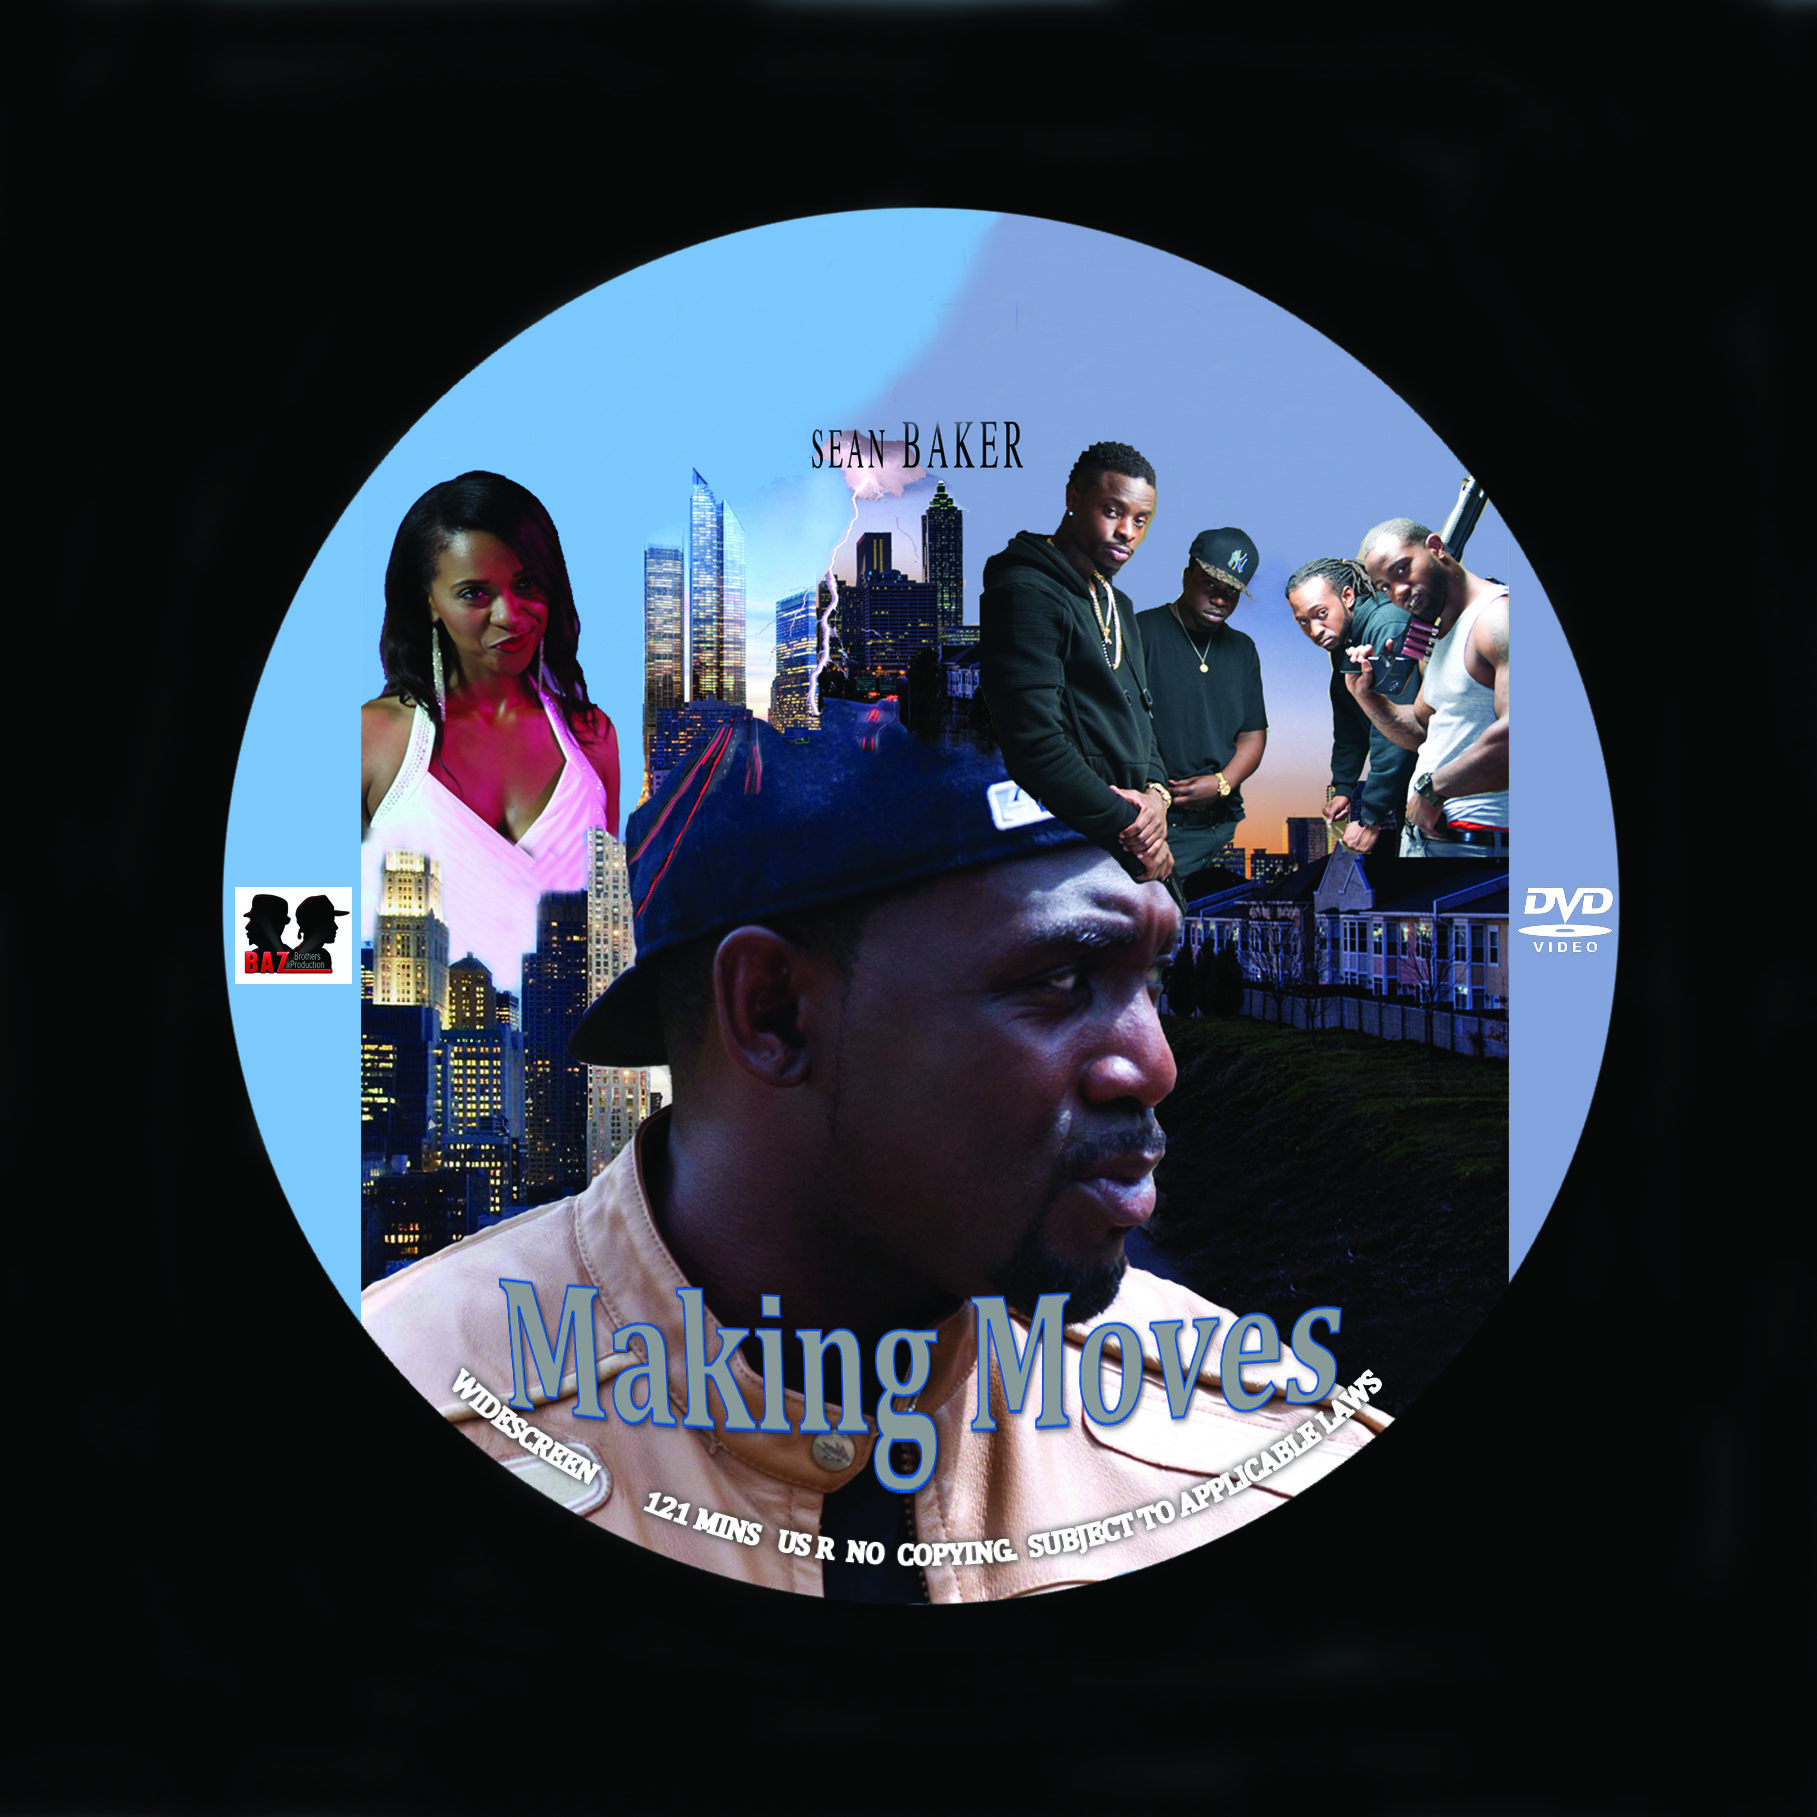 Making Moves DVD